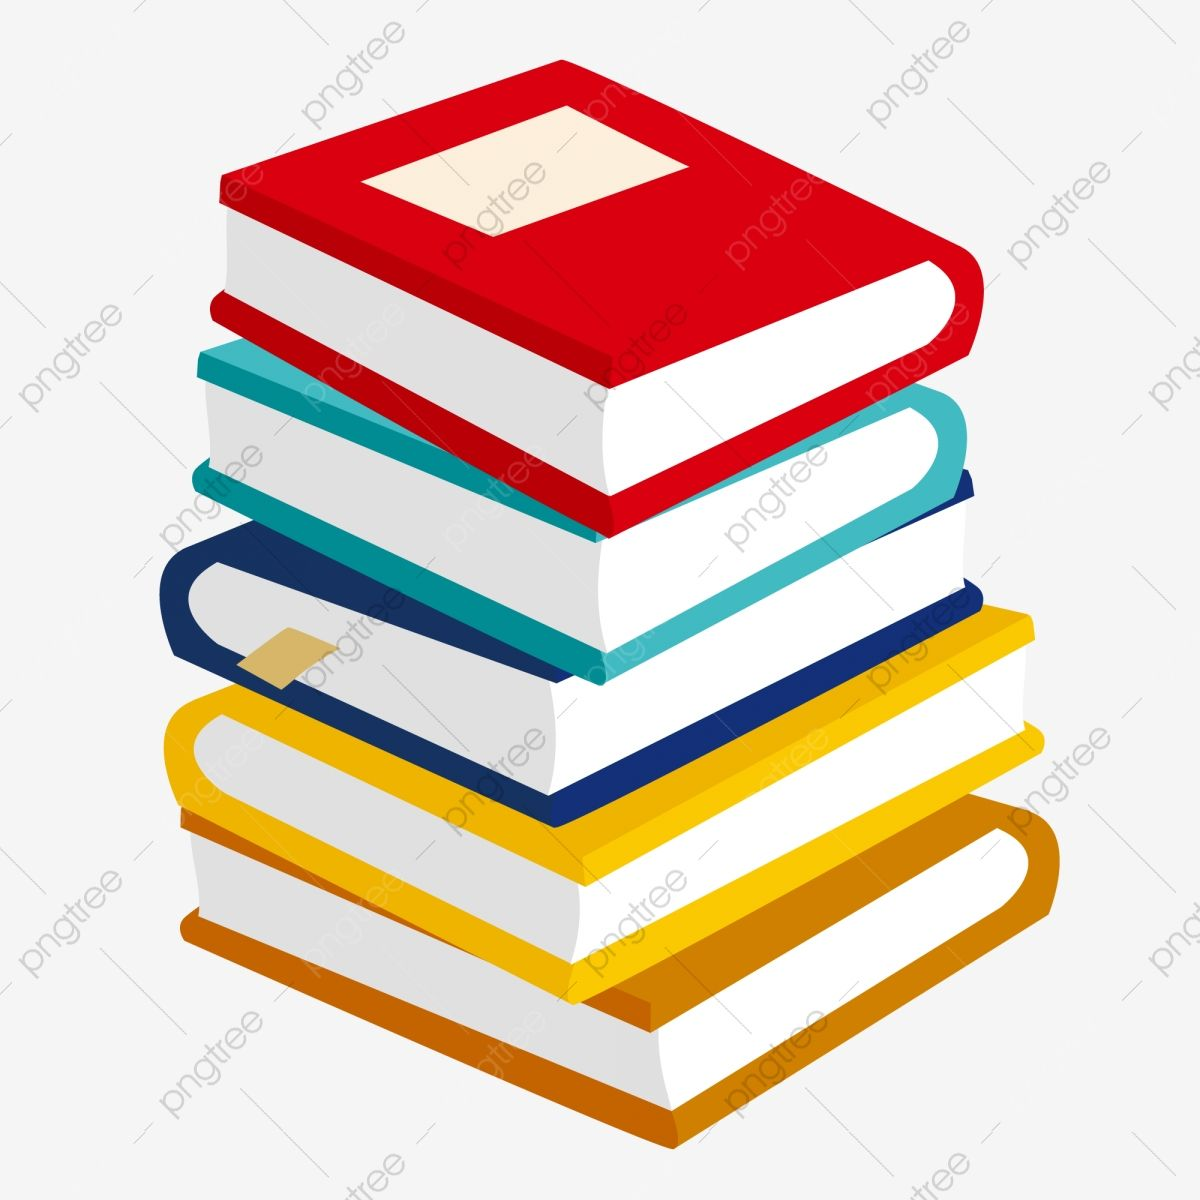 A Stack Of Colored Books Book Clipart A Large Stack Colored Books Png And Vector With Transparent Background For Free Download Coloring Books Book Icons Stack Of Books